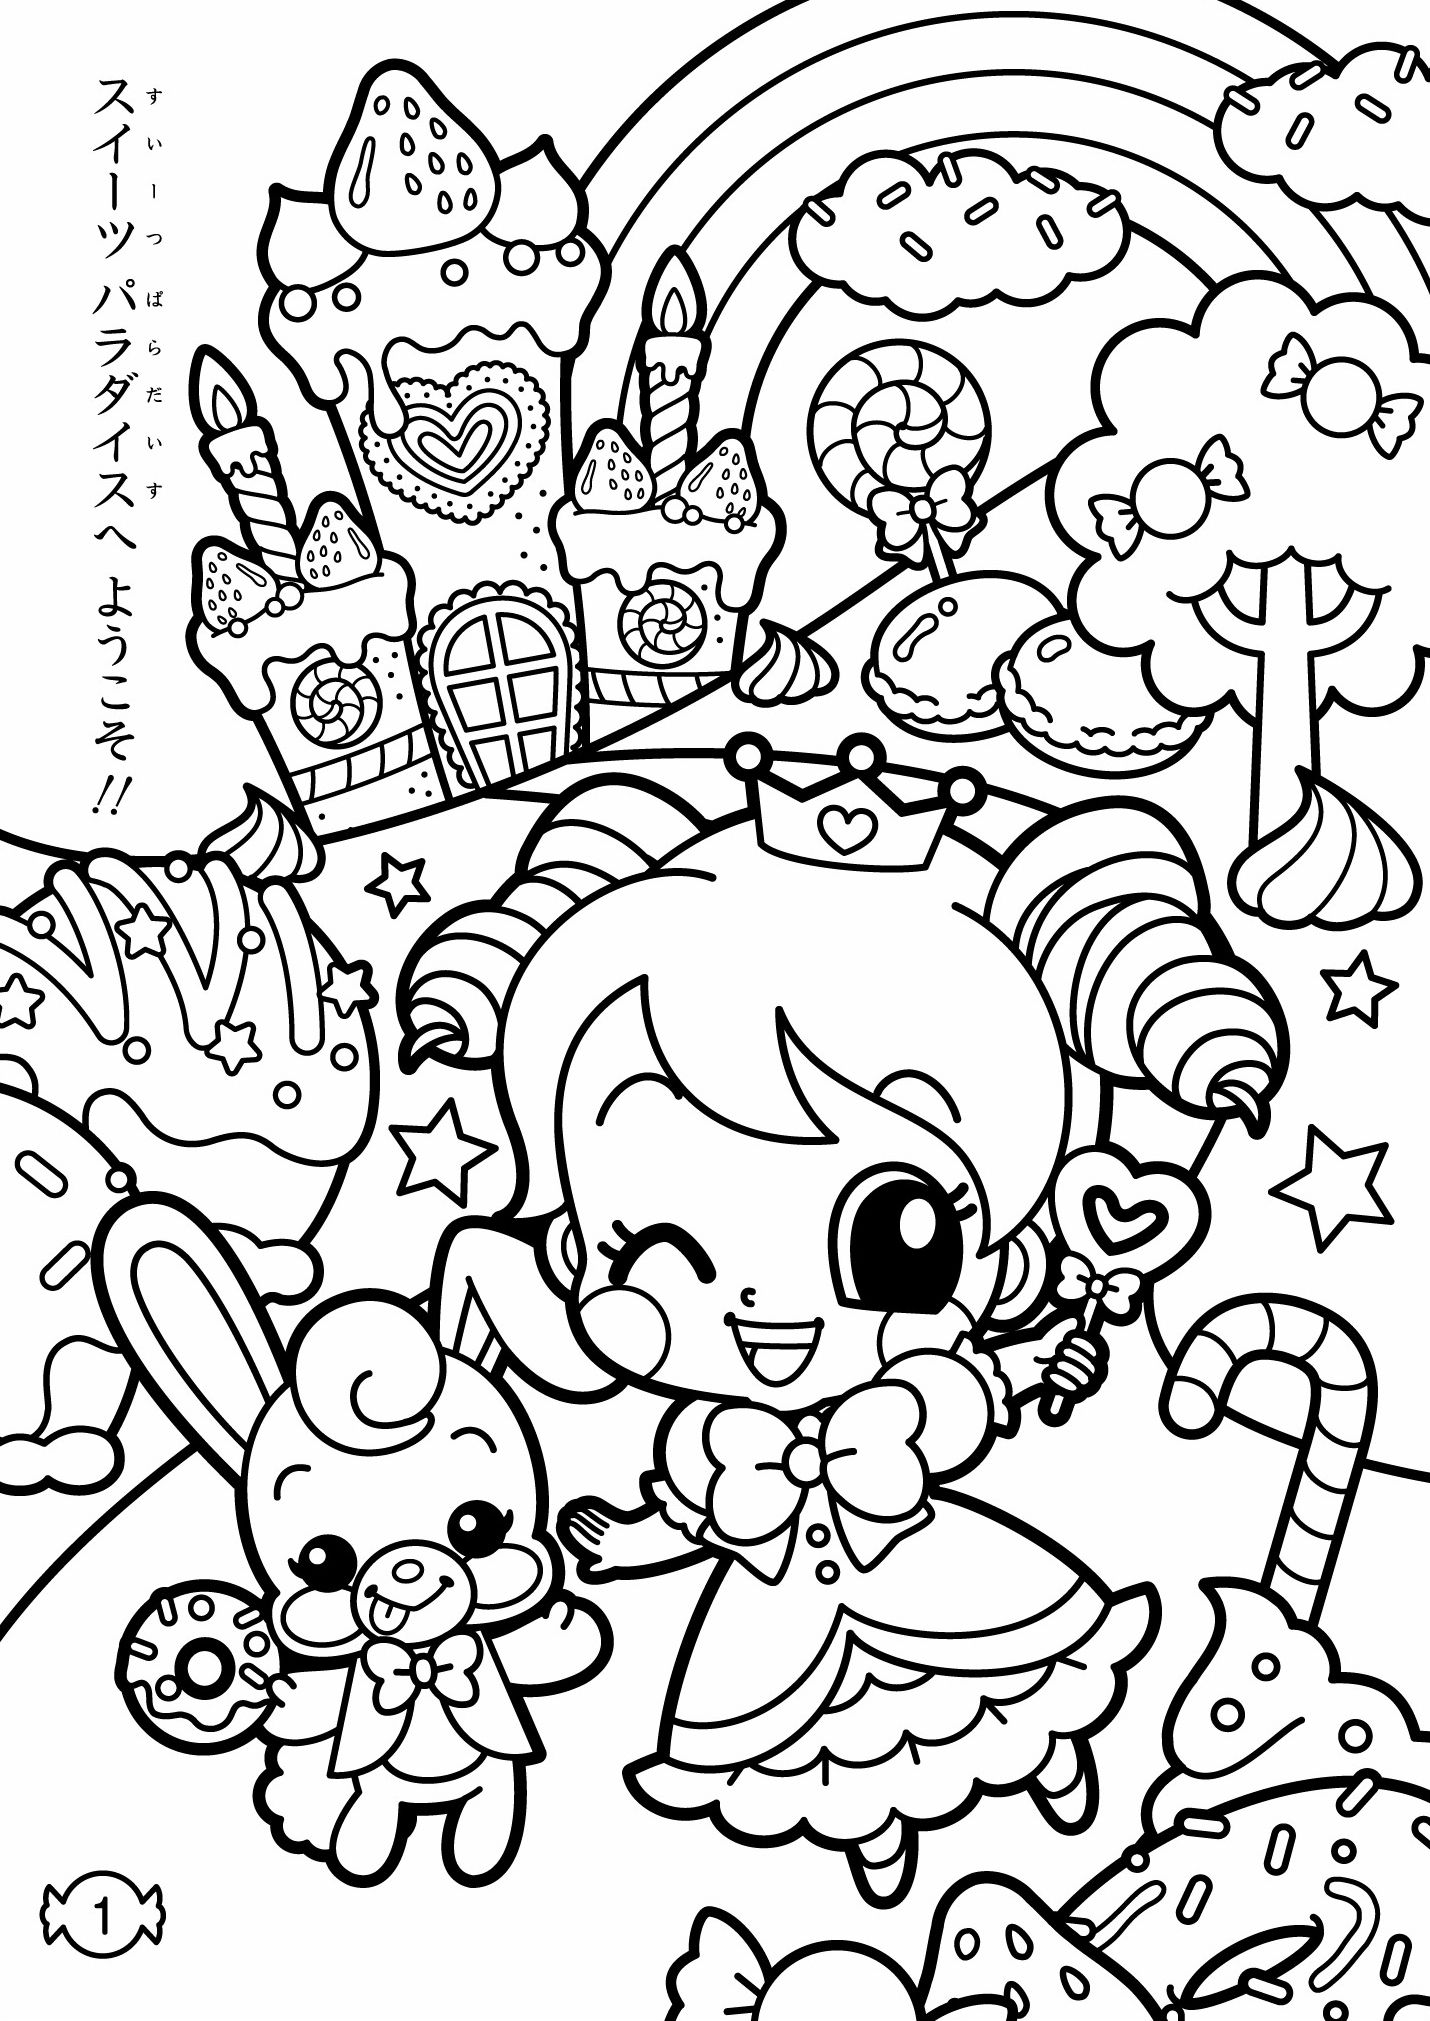 Sweets / Coloring Pages Kawaii | Coloring Pages | Pinterest ...